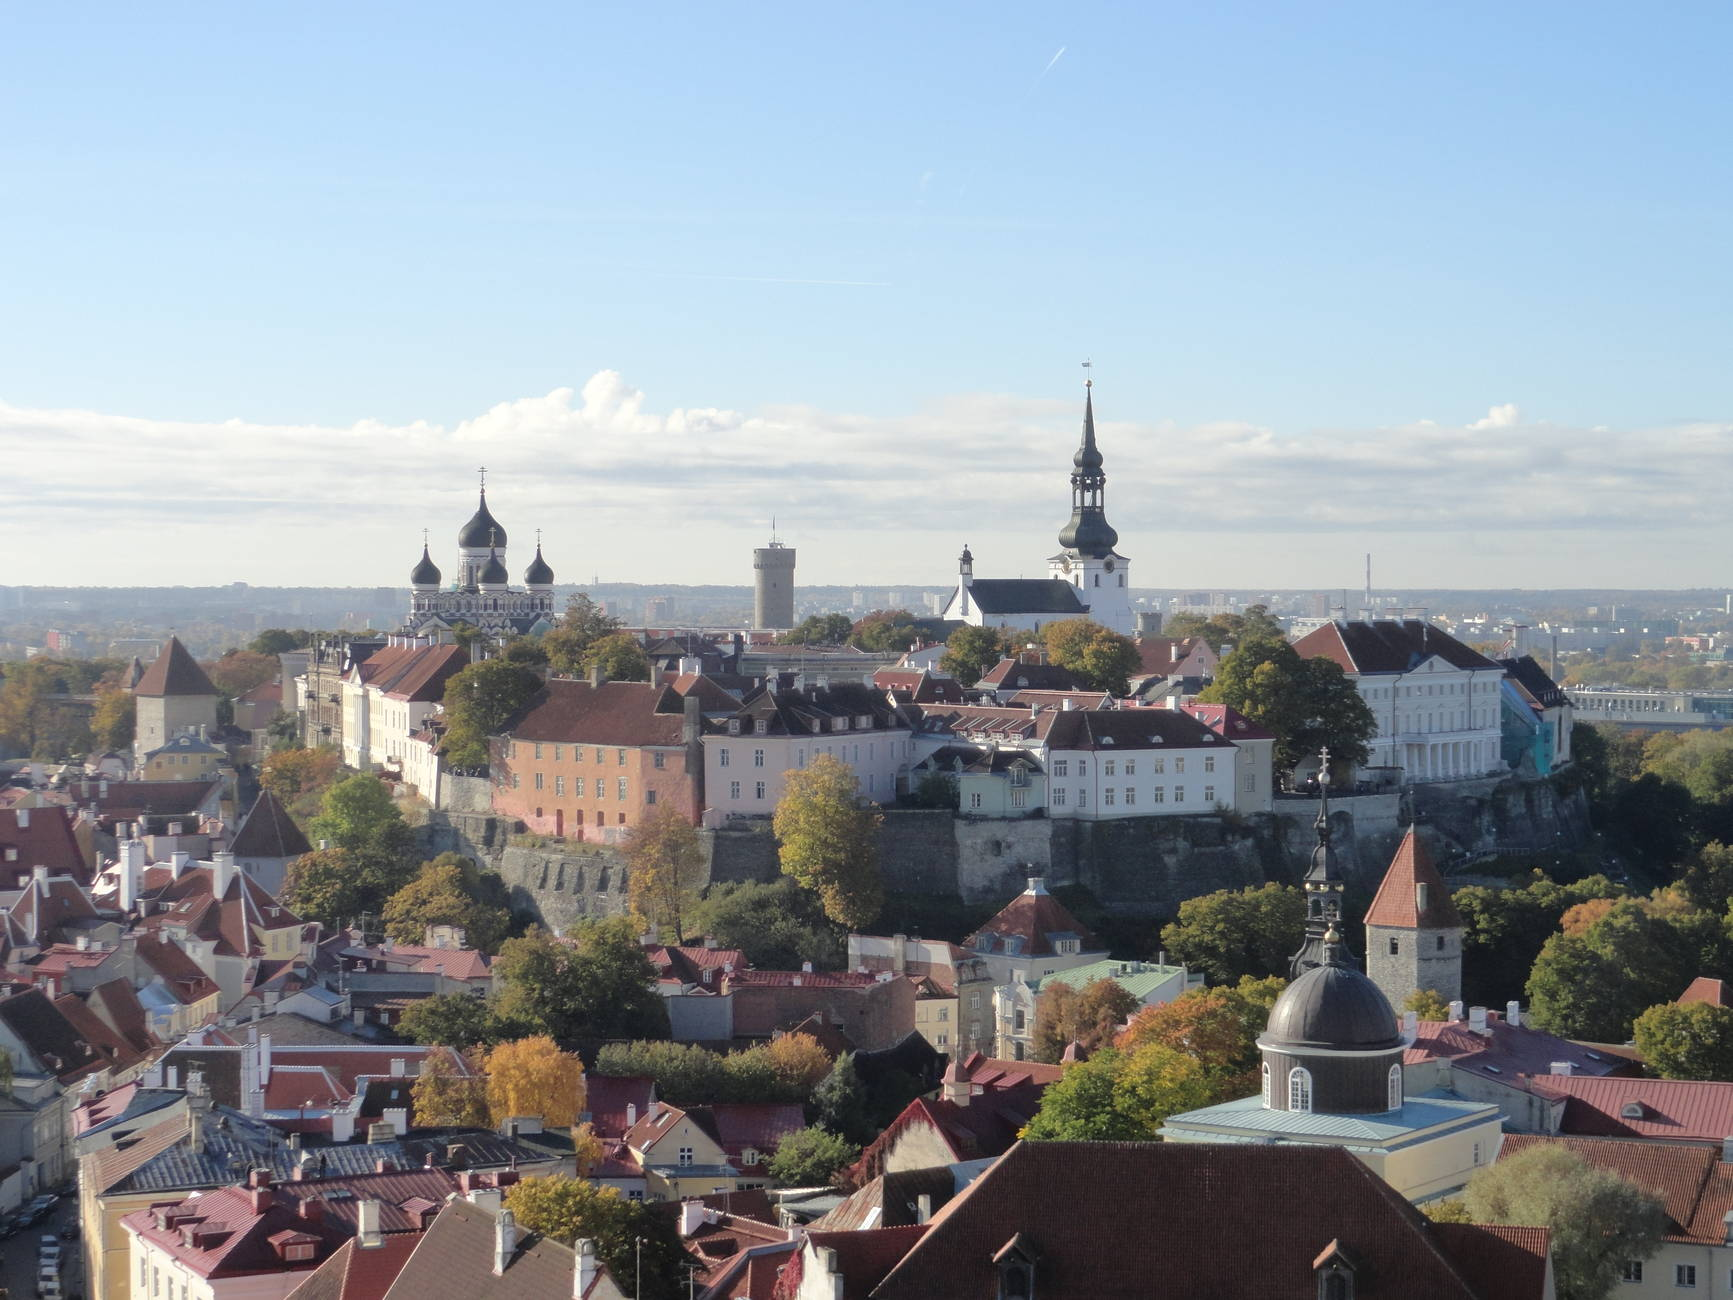 View of the Old Town in Tallinn, Estonia